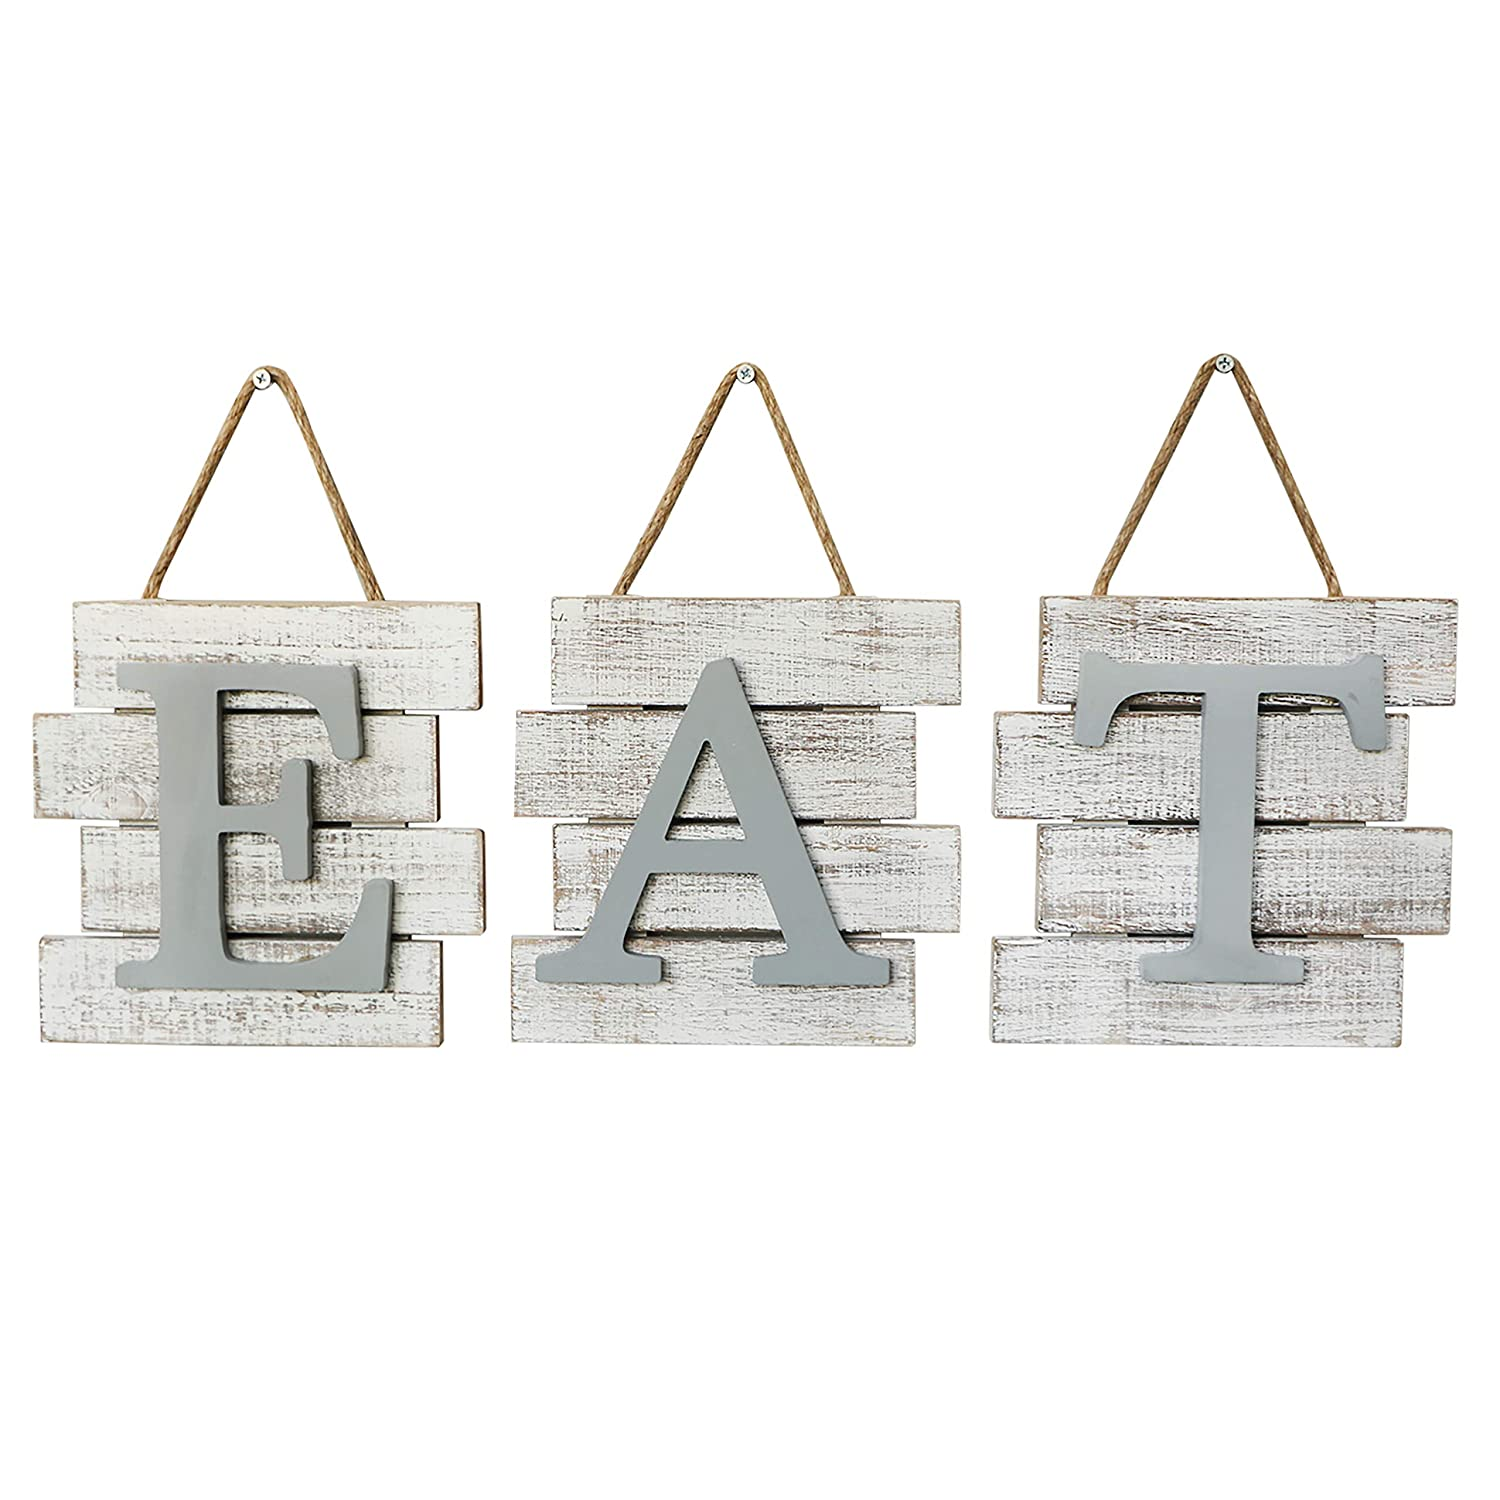 "Barnyard Designs Eat Sign Wall Decor Kitchen Home, Distressed White, Rustic Farmhouse Country Decorative Wall Art 24"" x 8"""